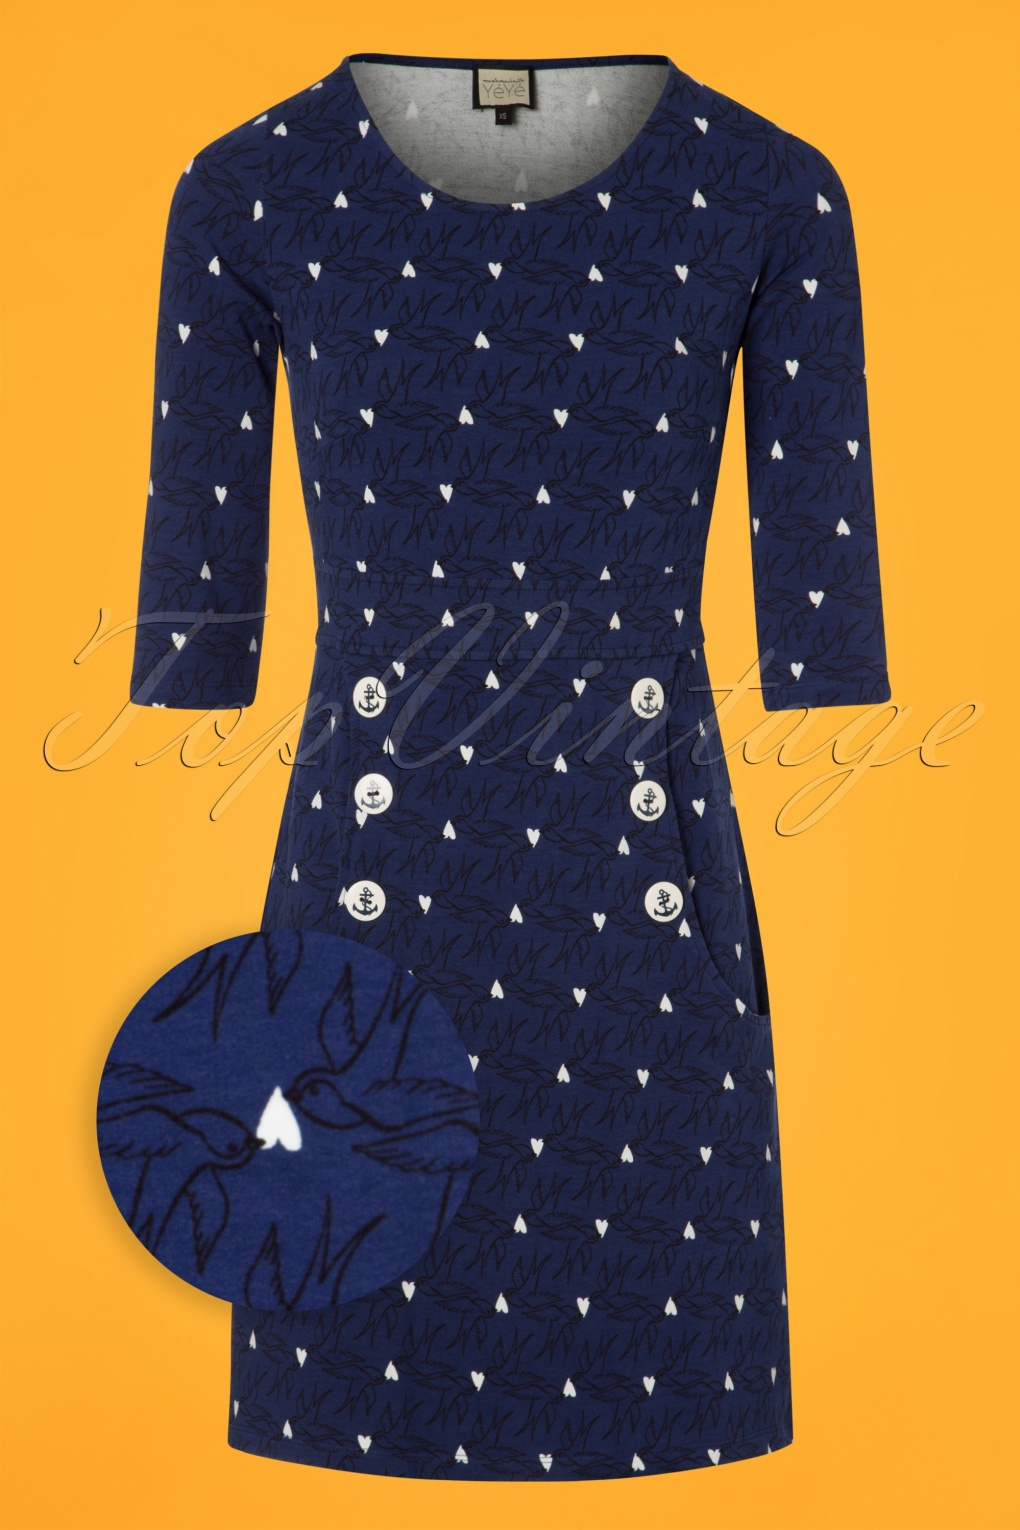 1960s Dresses | 60s Dresses Mod, Mini, Jakie O, Hippie 60s Oh My Lola Dress in Blue £93.41 AT vintagedancer.com